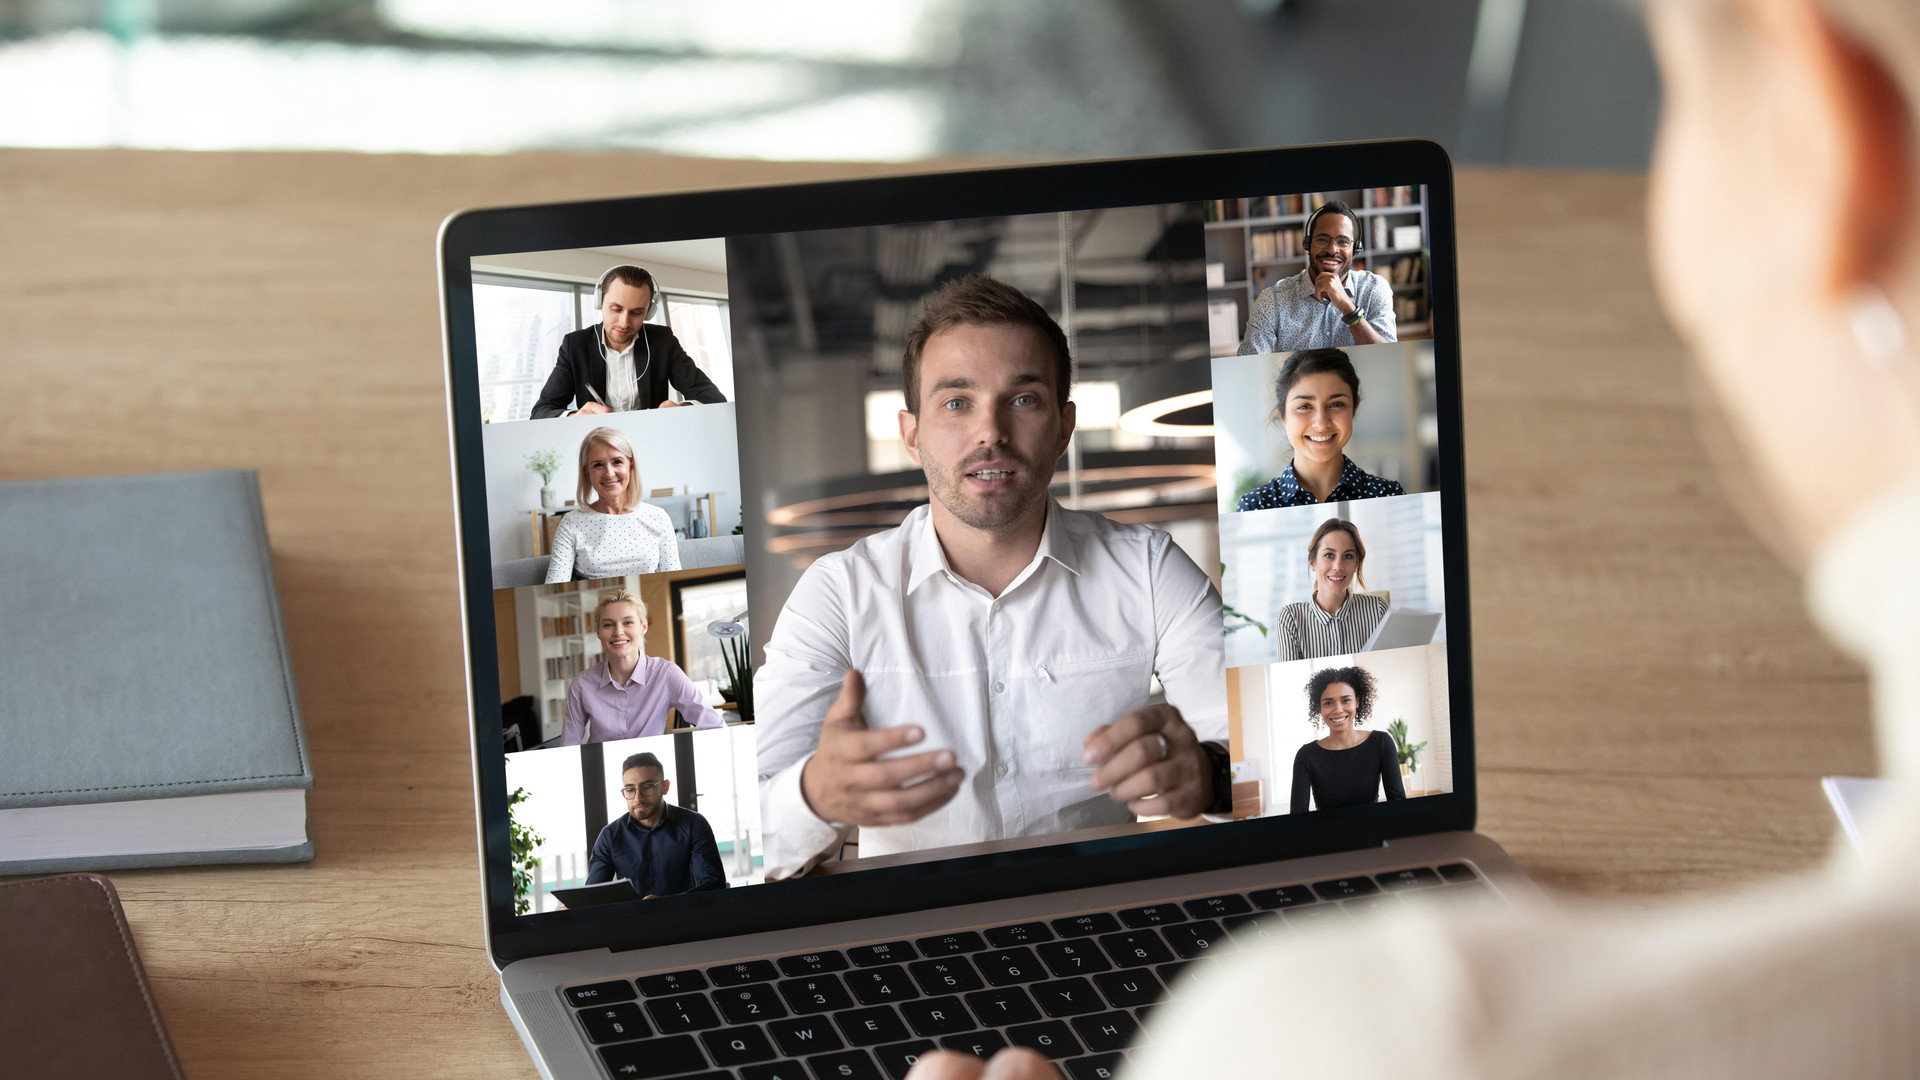 Is Remote Work Good Or Bad For Employee Engagement? Your Leadership Holds The Answer